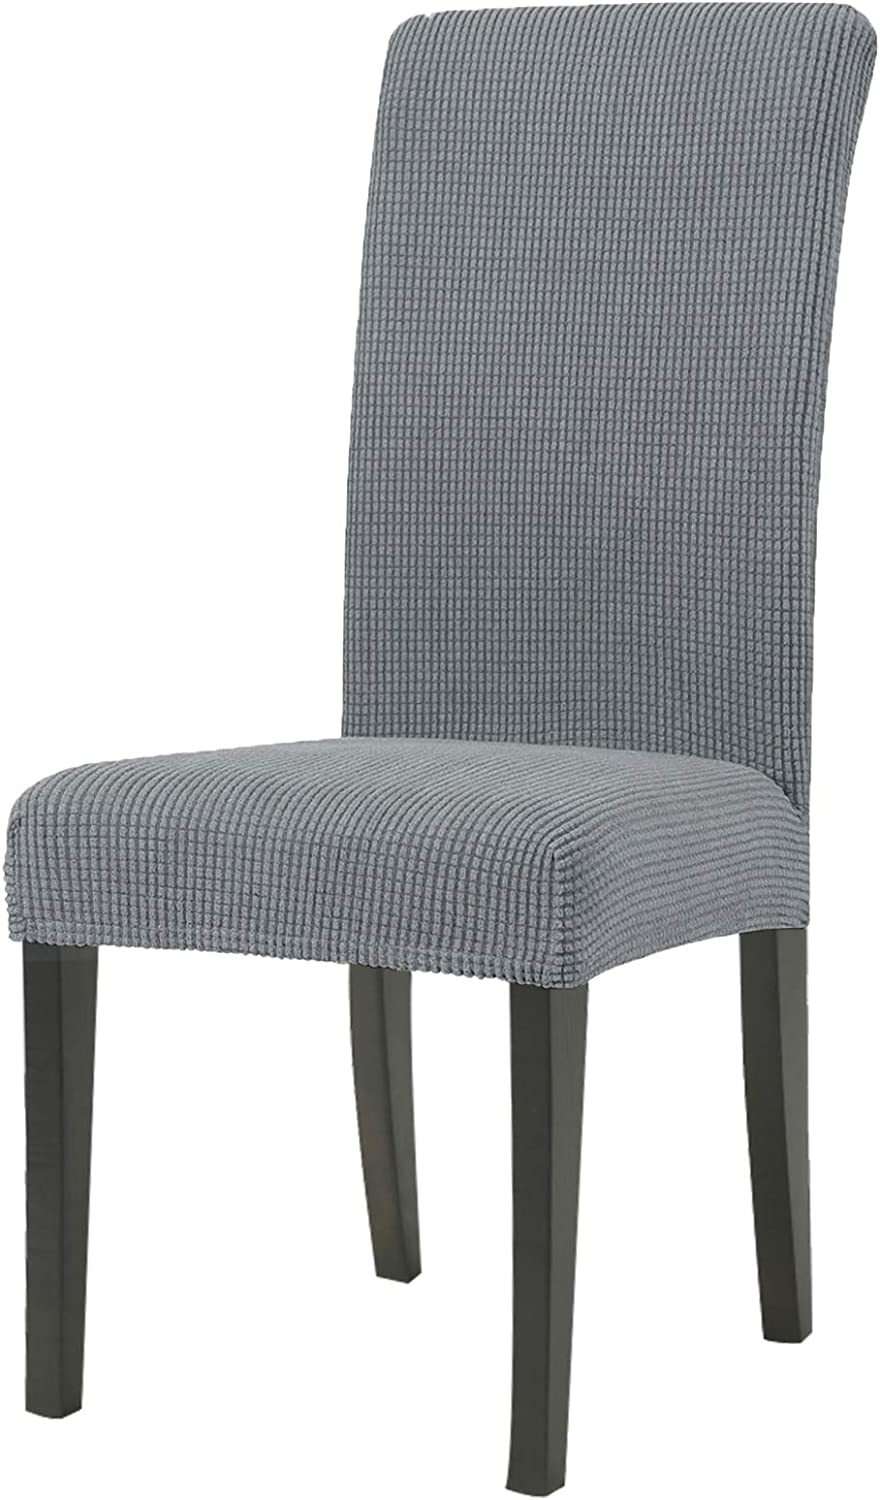 JIVINER Thick Stretchy Dining Chair Slipcover Set Washable Jacquard Parsons Chair Covers Removable Kitchen Chair Furniture Protector for Dining Room, Hotel, Party (4, Light Gray)